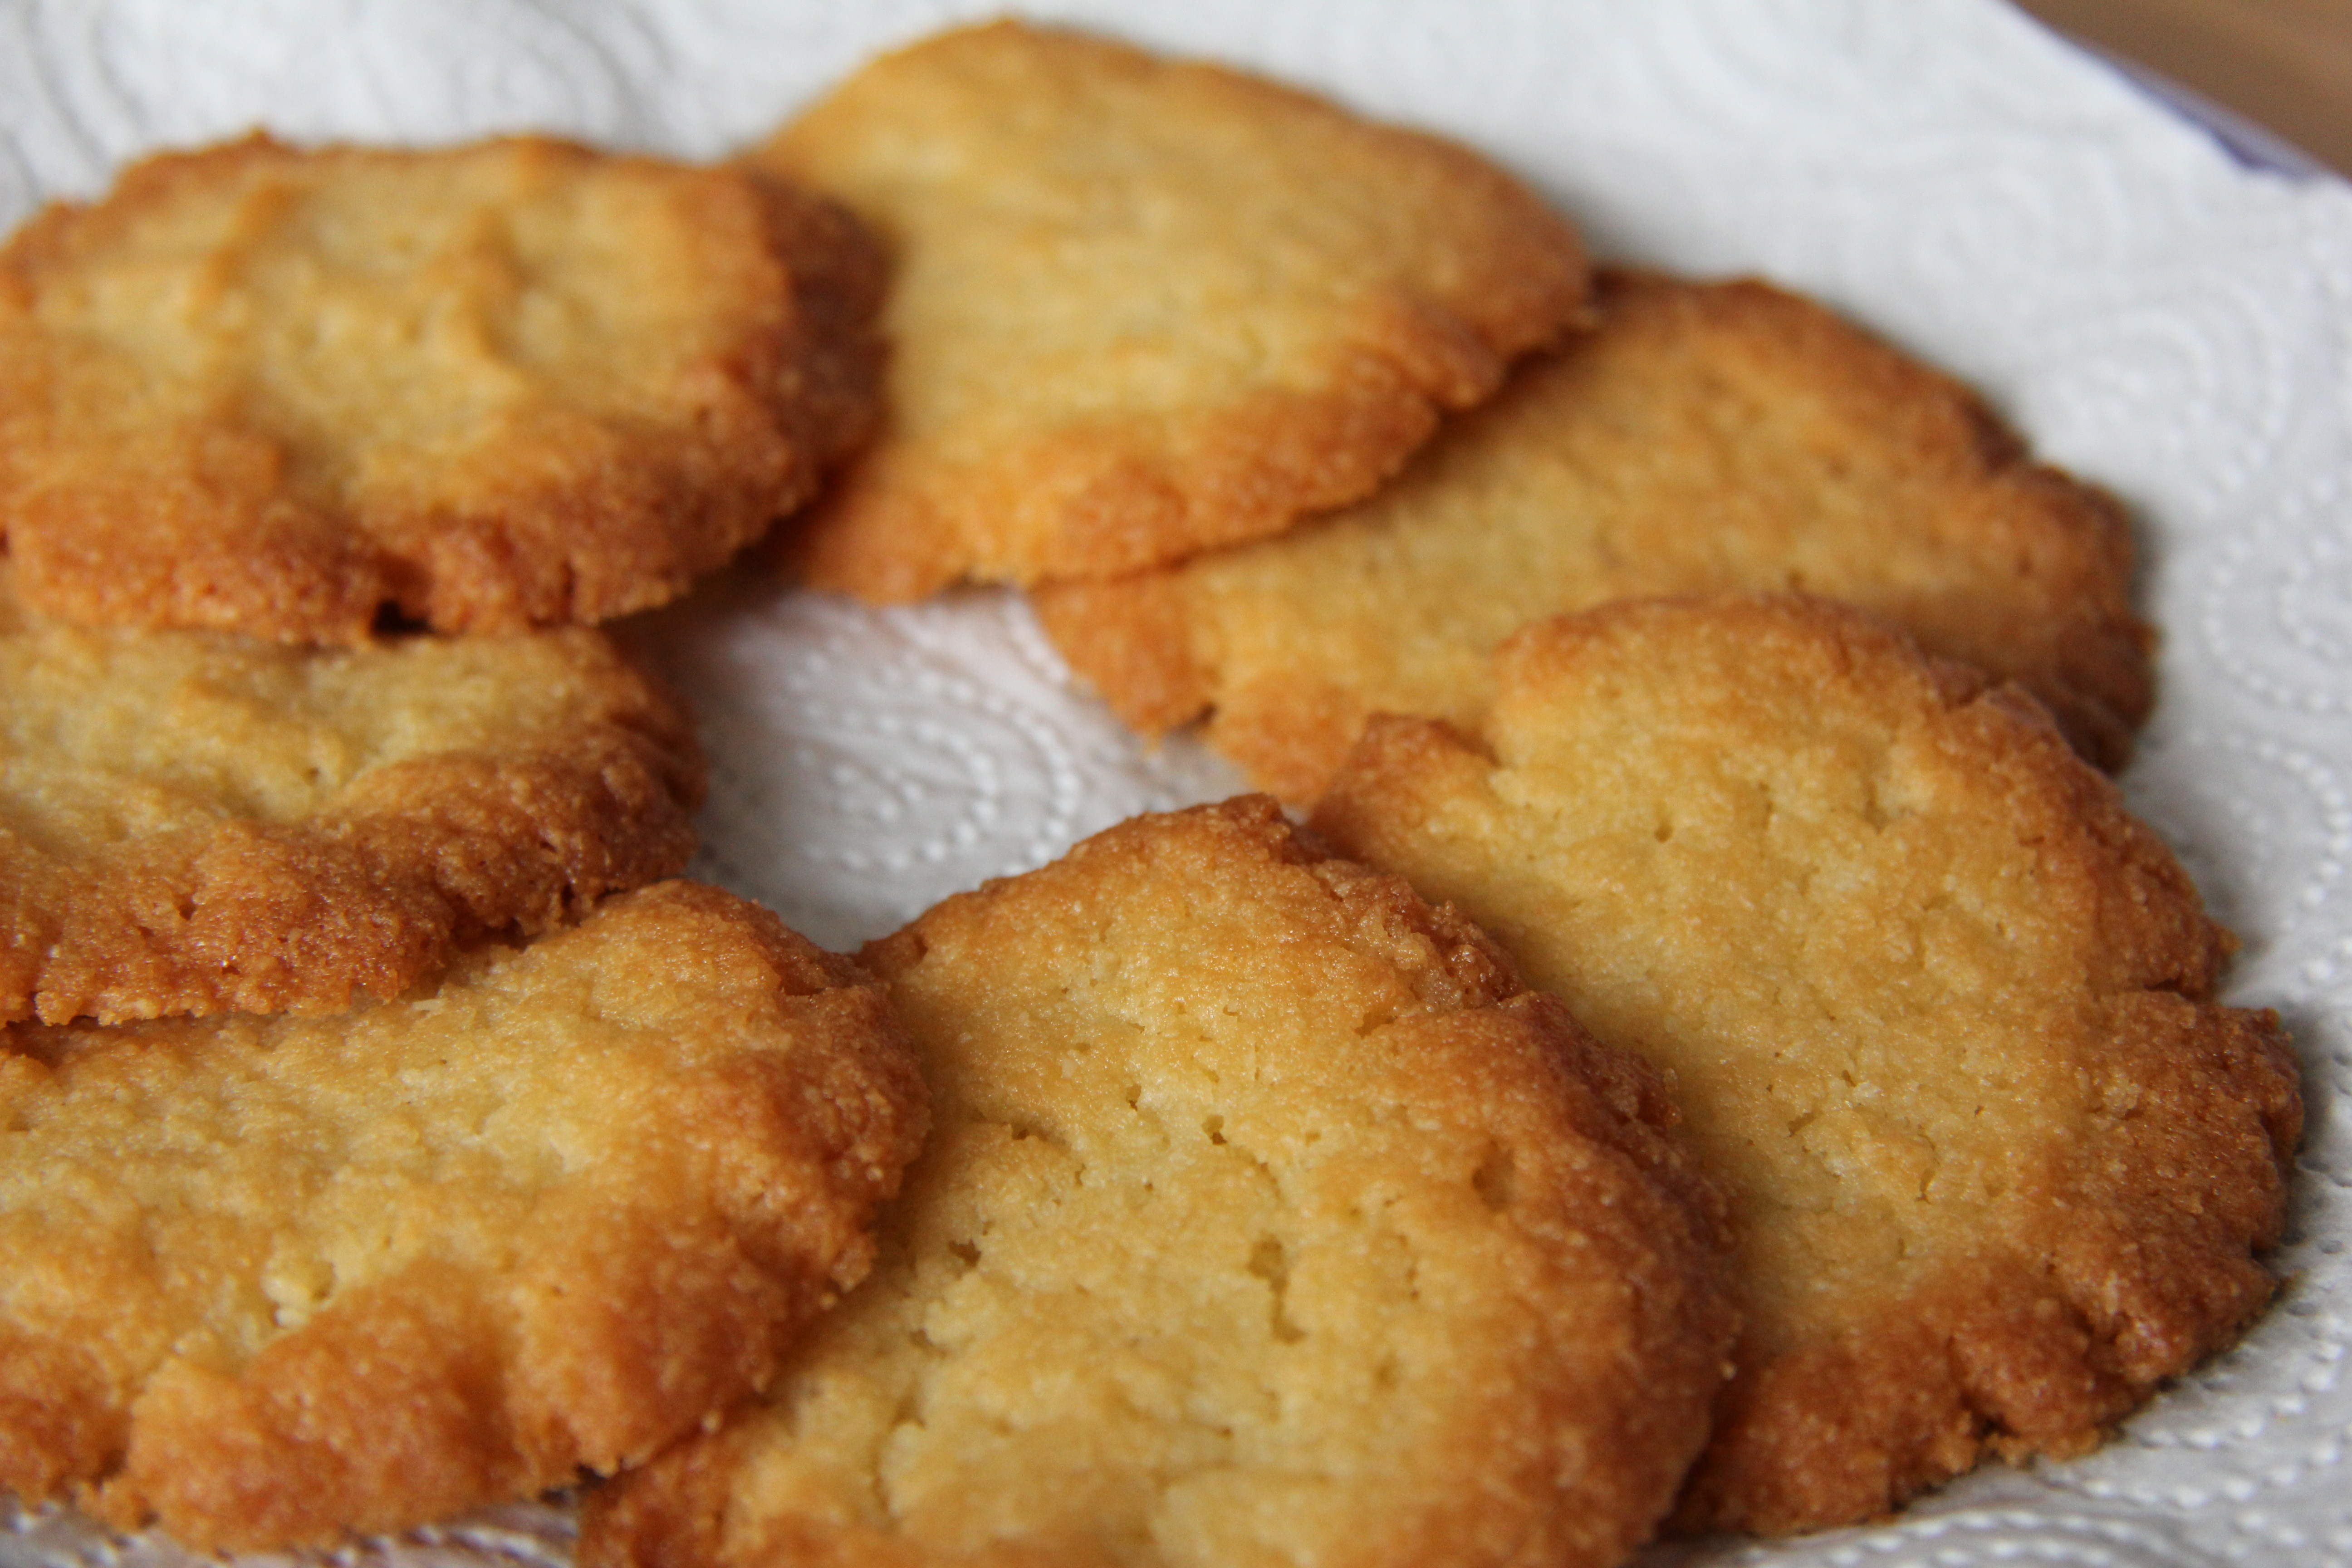 Almond Cake Recipe Low Carb: Butter Cookies (Almond Flour)